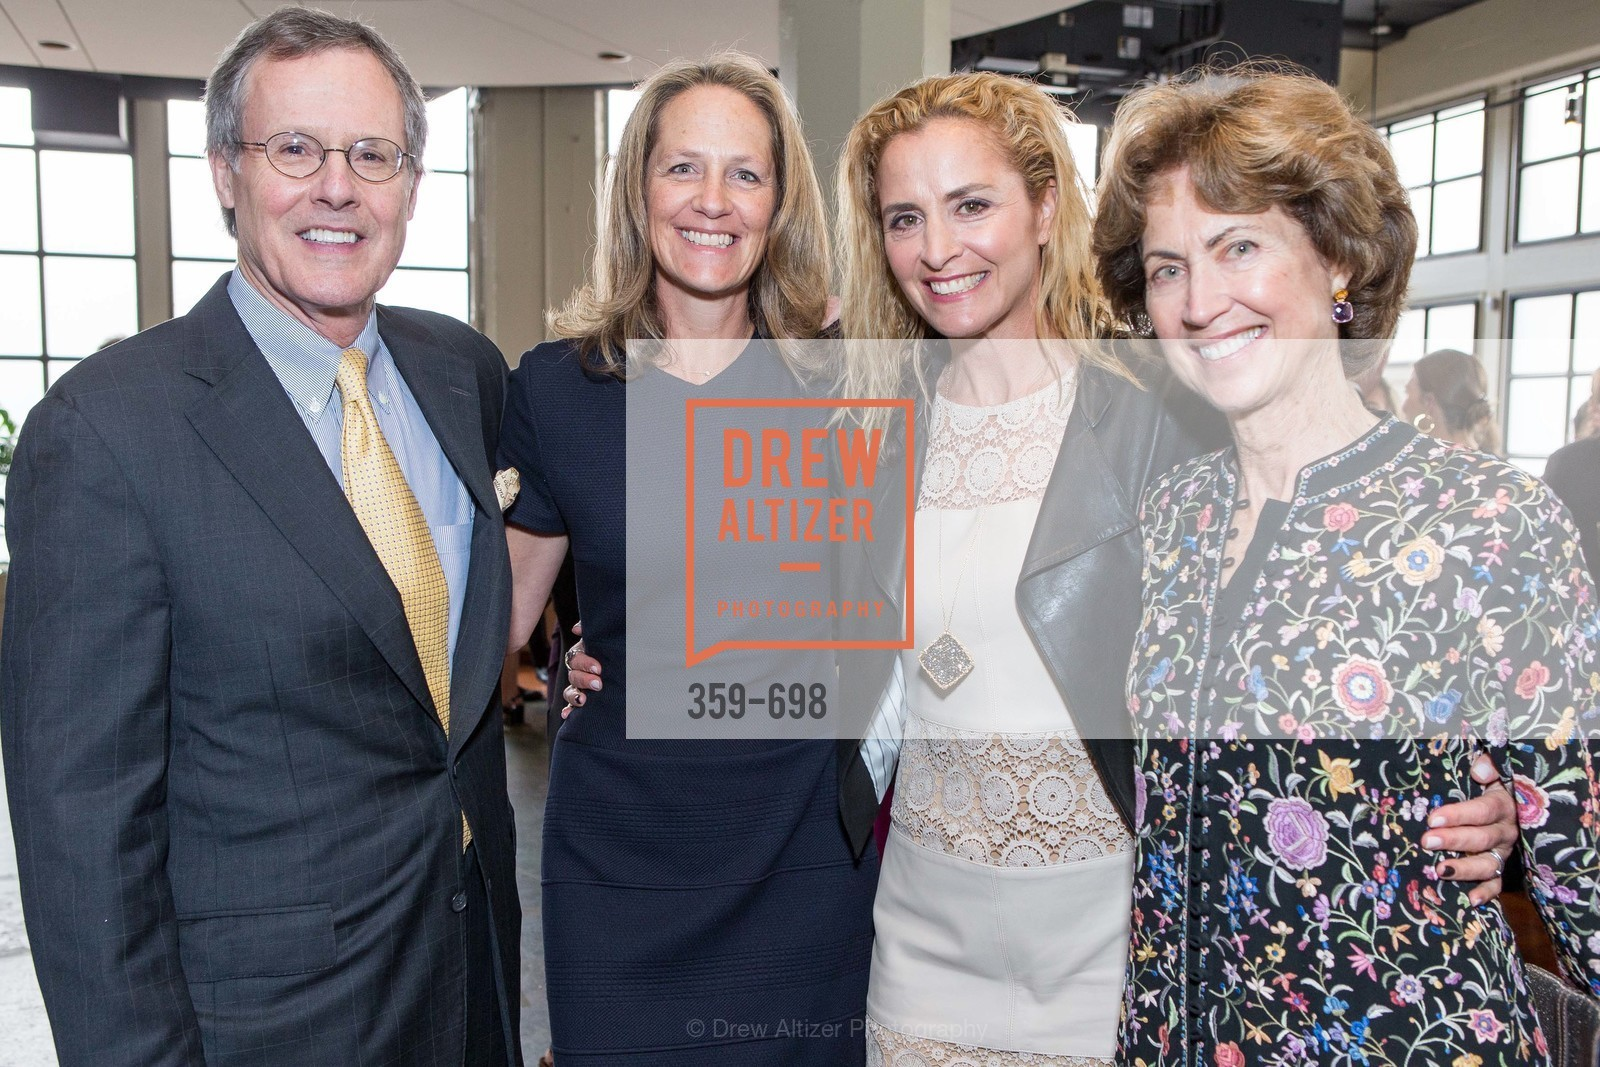 Mark Perry, Jessica Grant, Ami Aronson, Mauree Jane Perry, EWG's 6th Annual Earth Dinner, US, May 5th, 2015,Drew Altizer, Drew Altizer Photography, full-service agency, private events, San Francisco photographer, photographer california